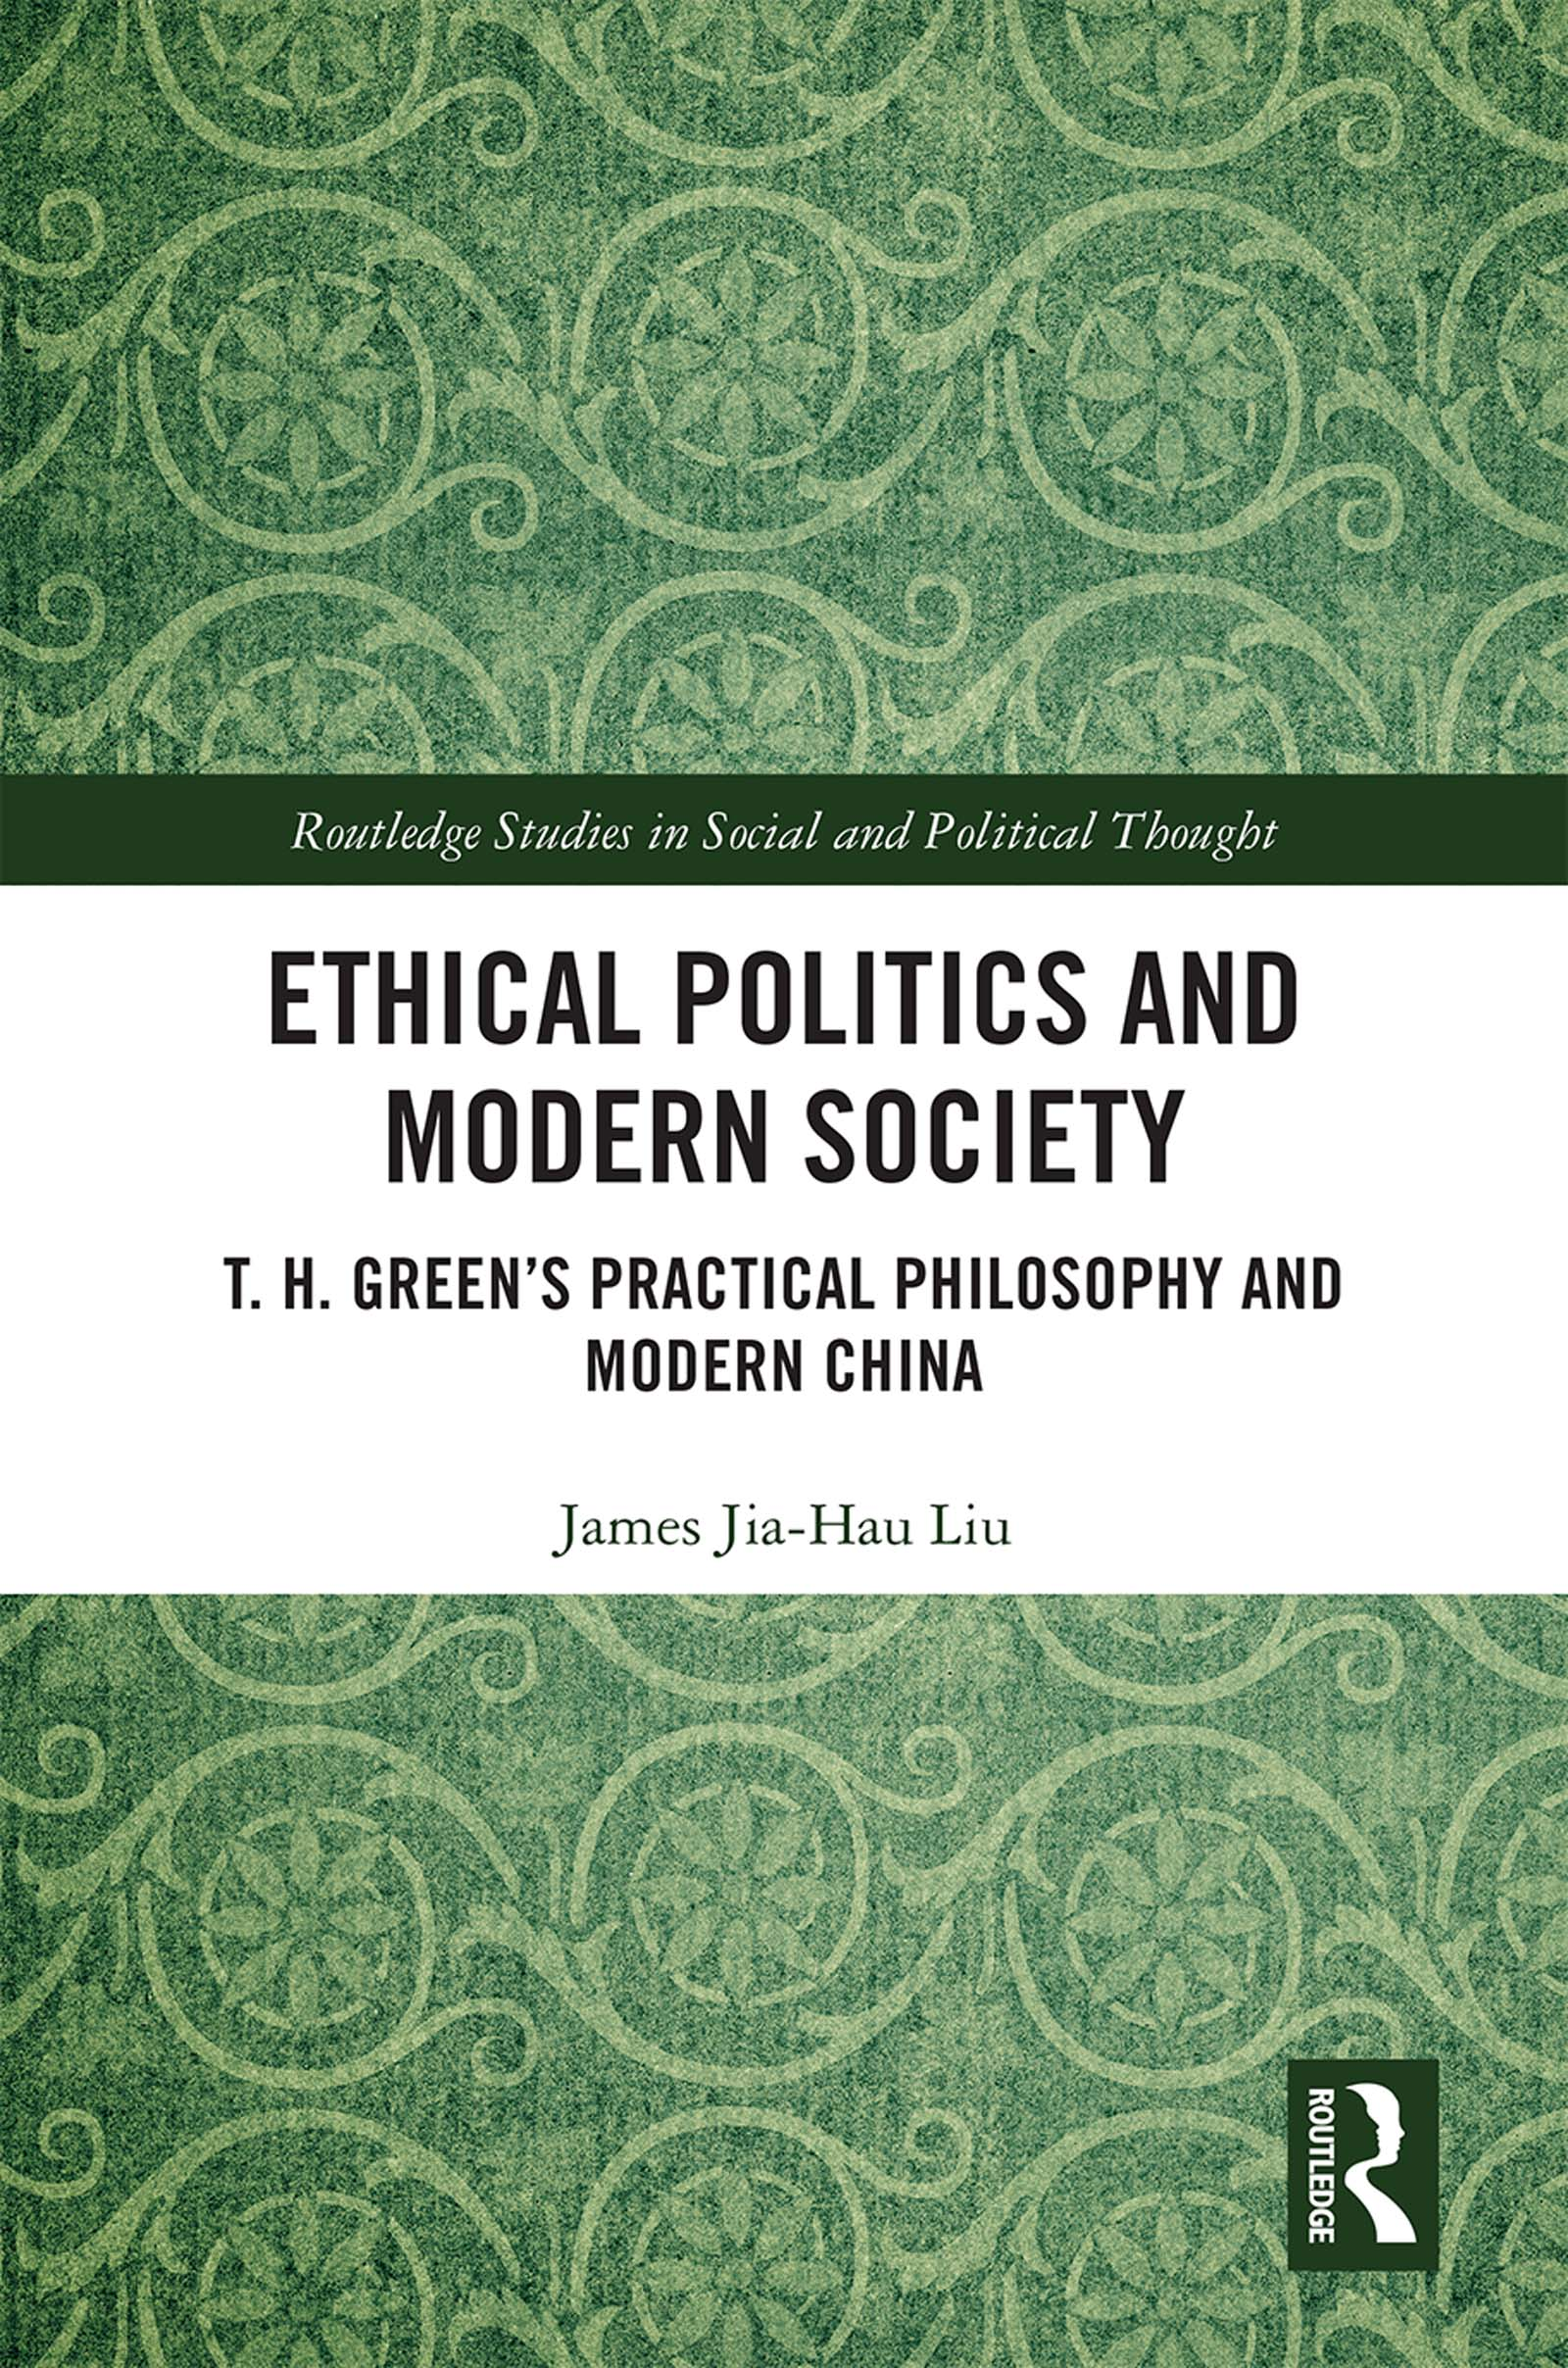 Ethical Politics and Modern Society: T. H. Green's Practical Philosophy and Modern China book cover